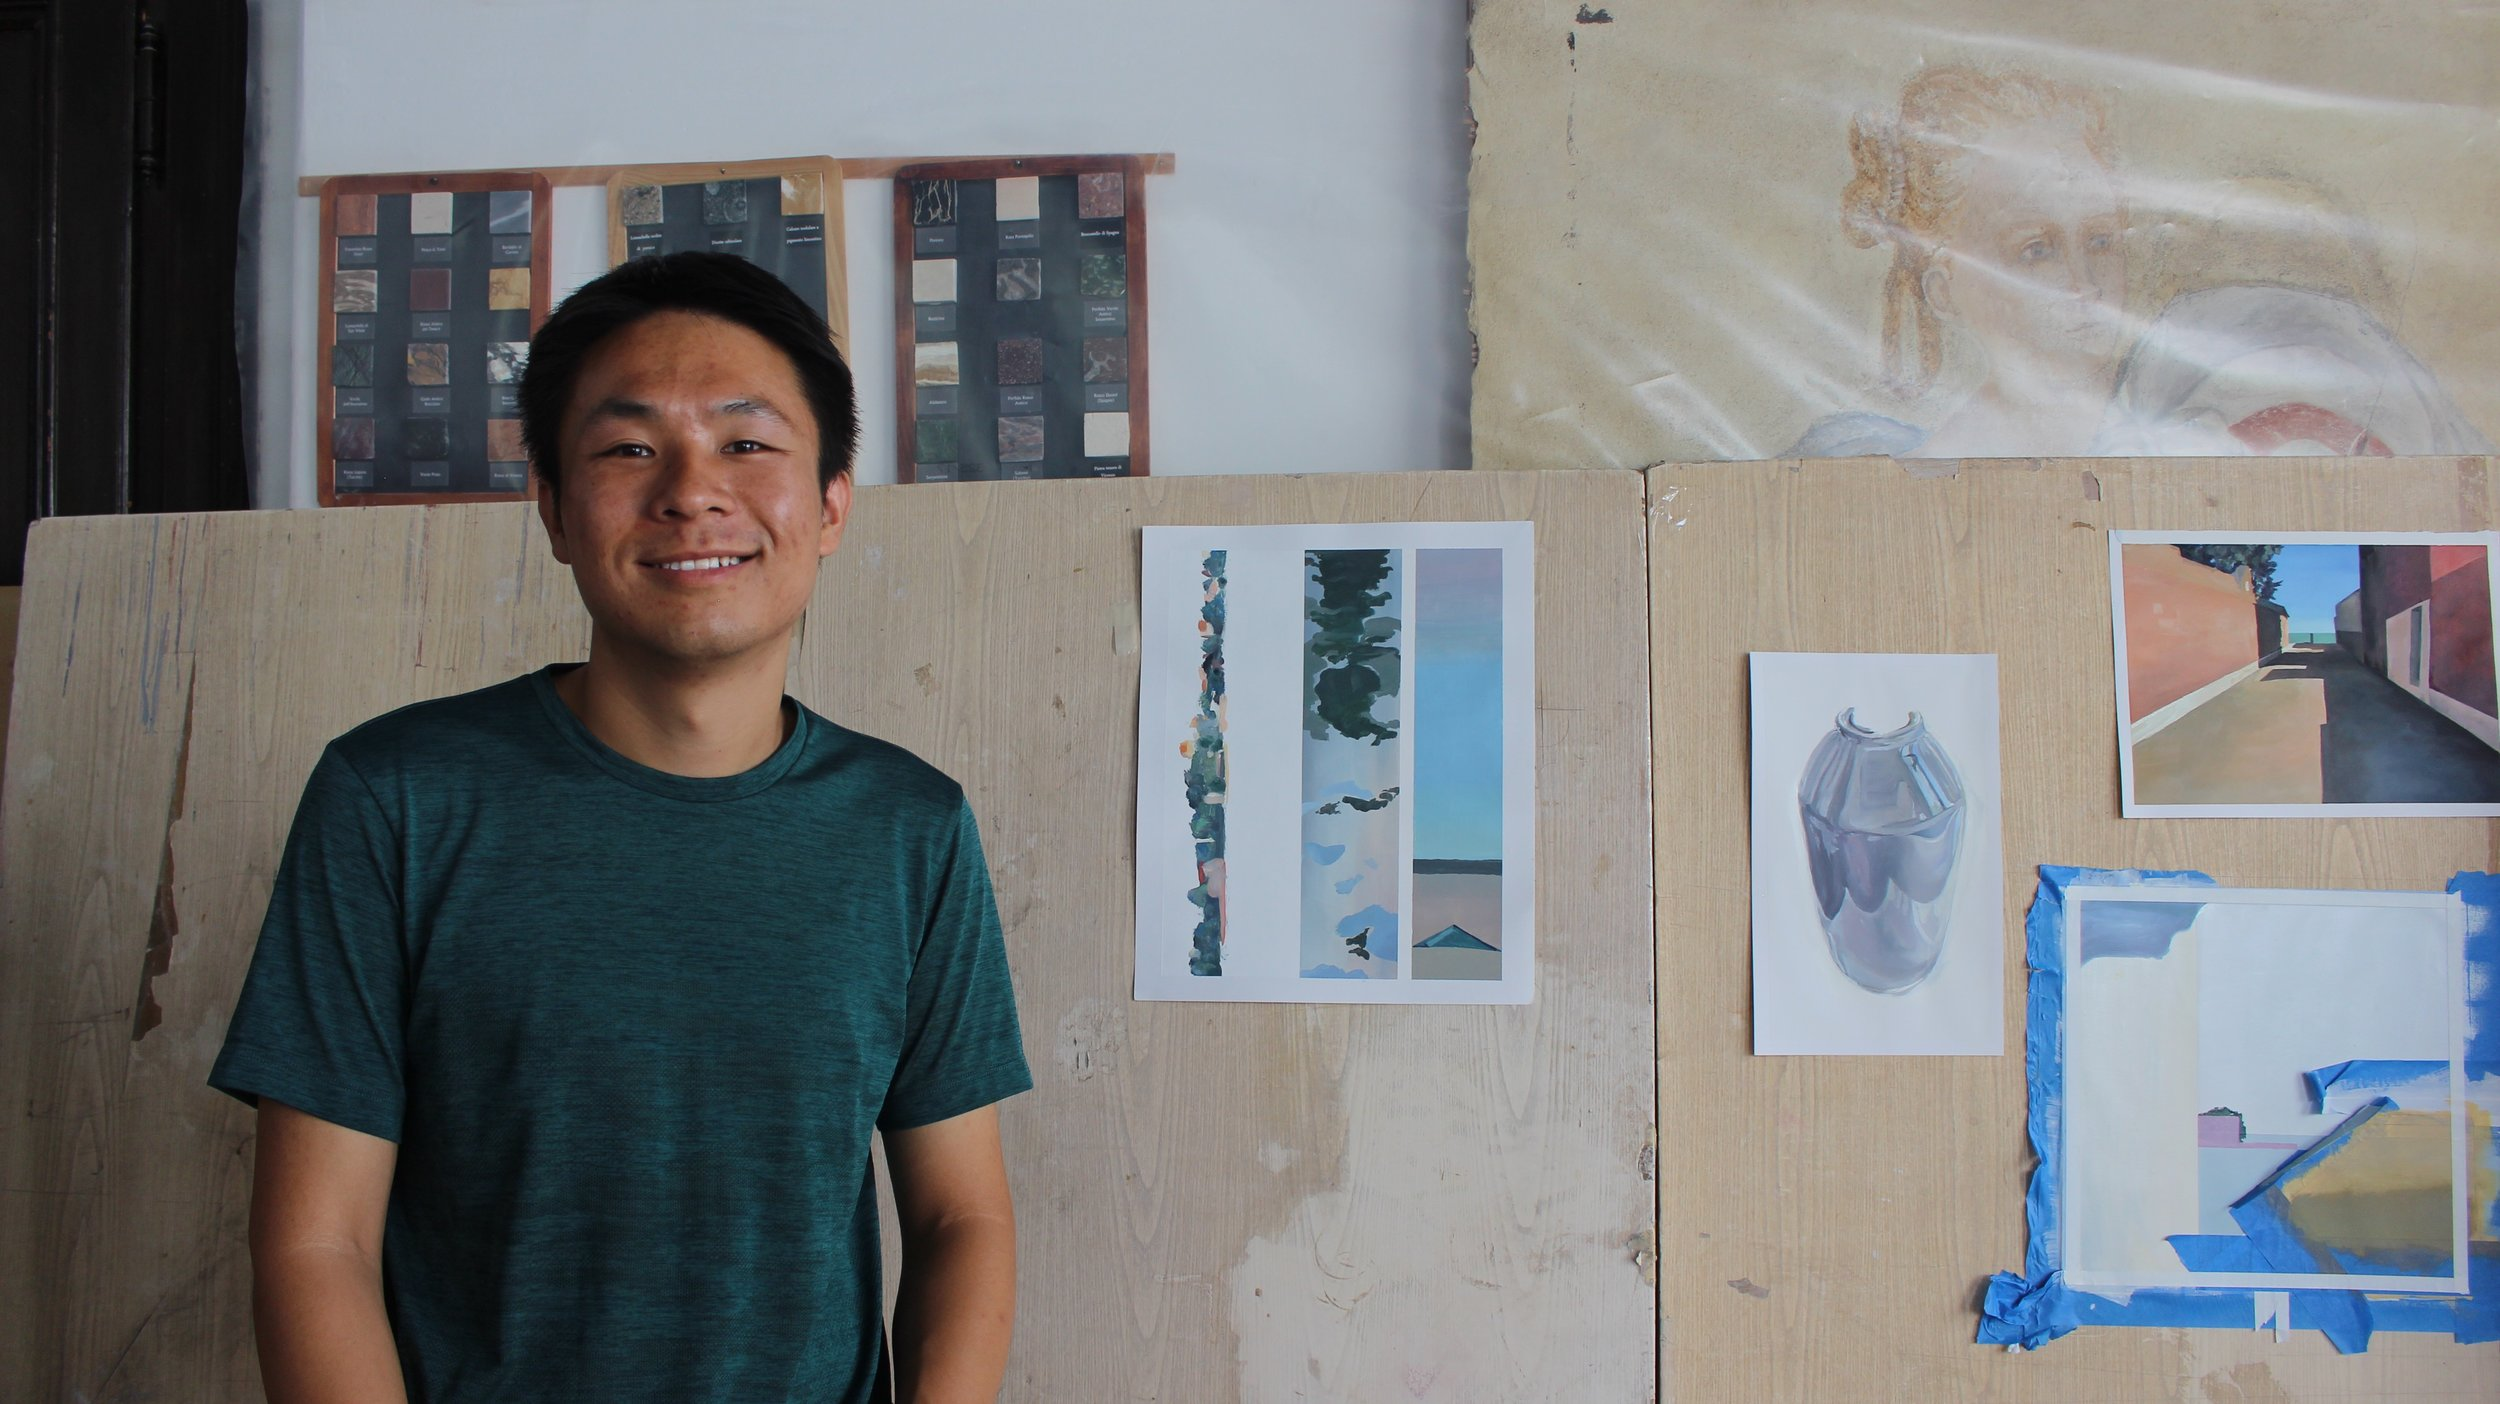 Xingze Li pictured here at his final critique at UIA.